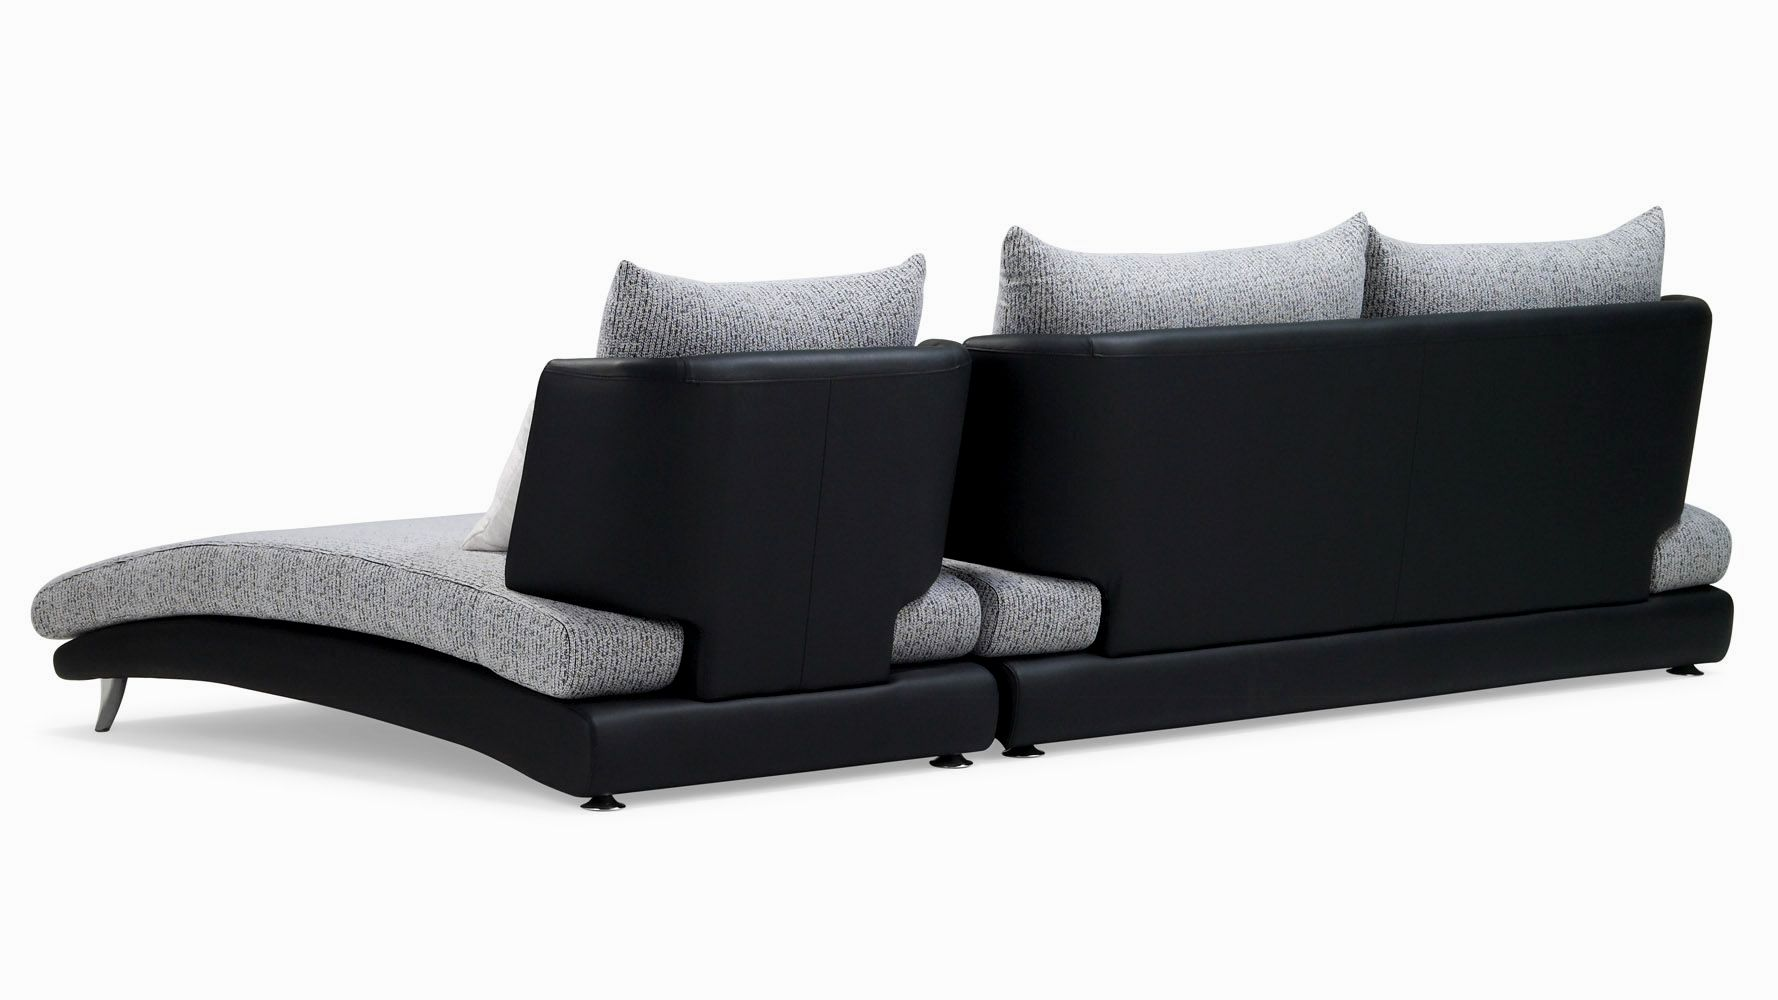 modern affordable sectional sofas photo-Beautiful Affordable Sectional sofas Décor